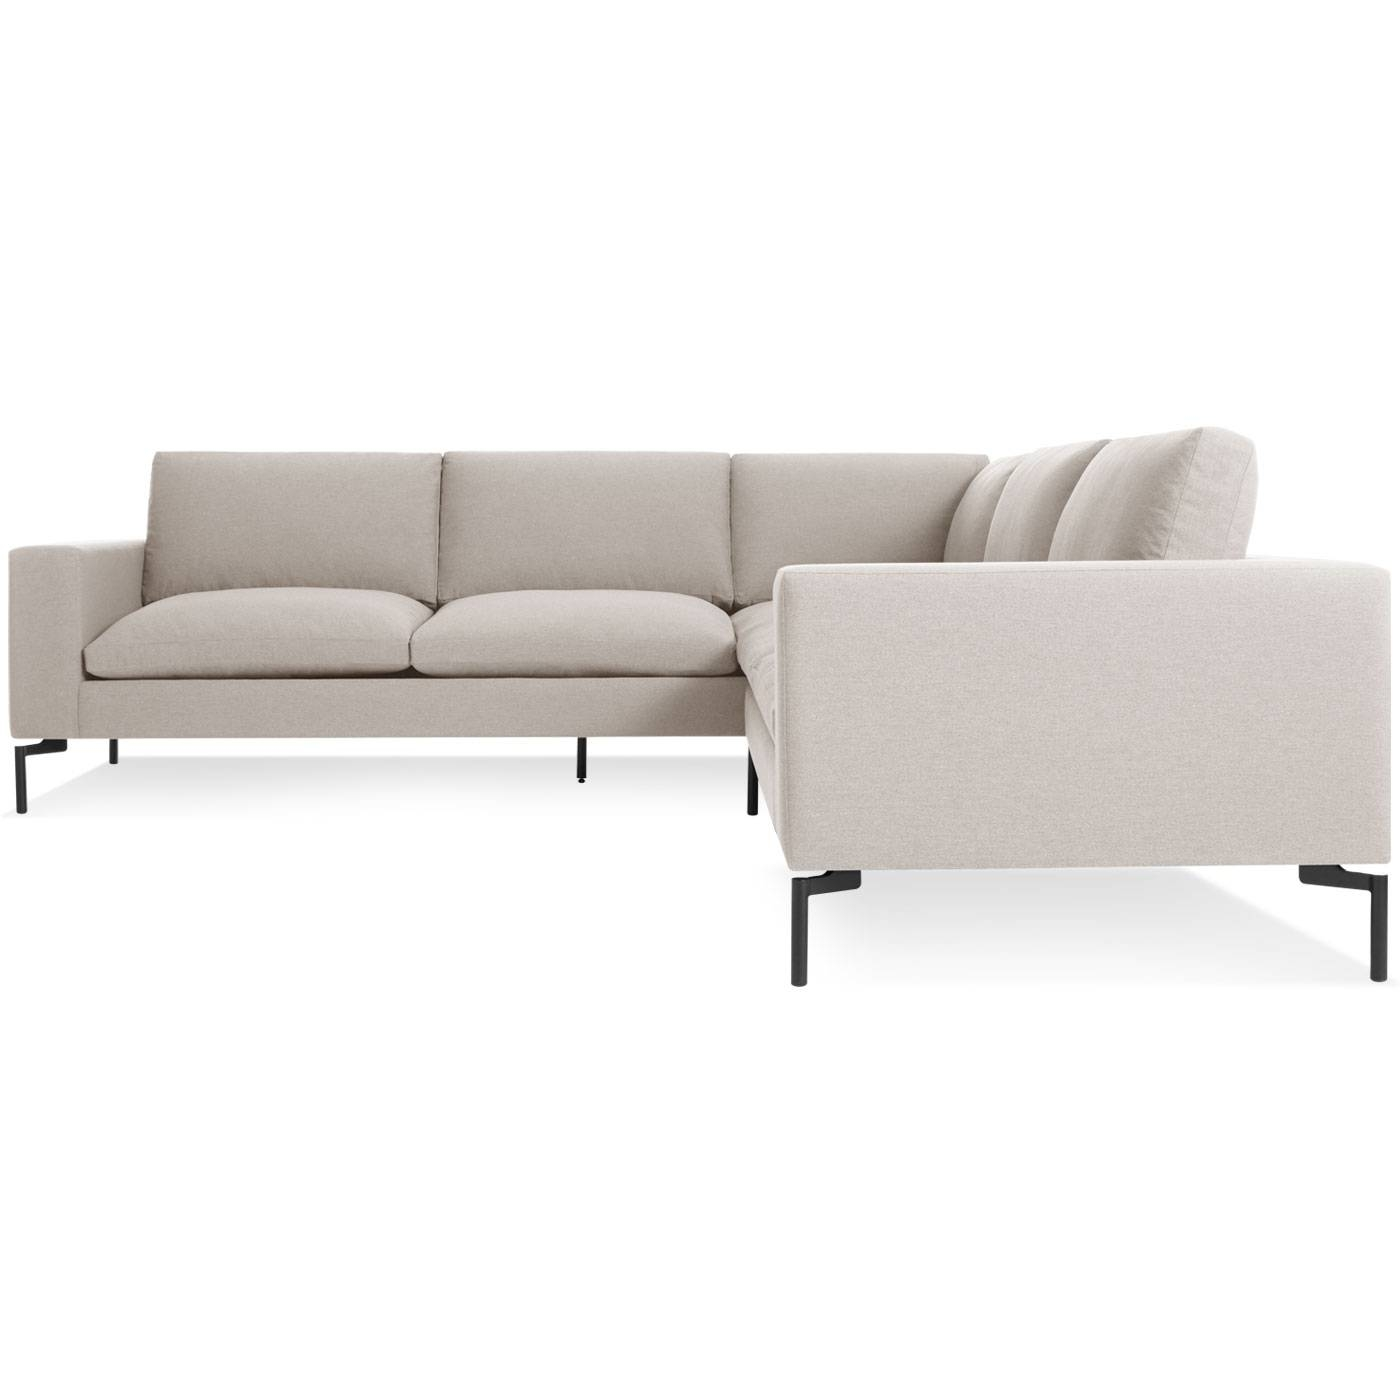 New Standard Small Sectional Sofa   Modern Sofas And Sectionals For Small Modern Sofas (Photo 13 of 15)